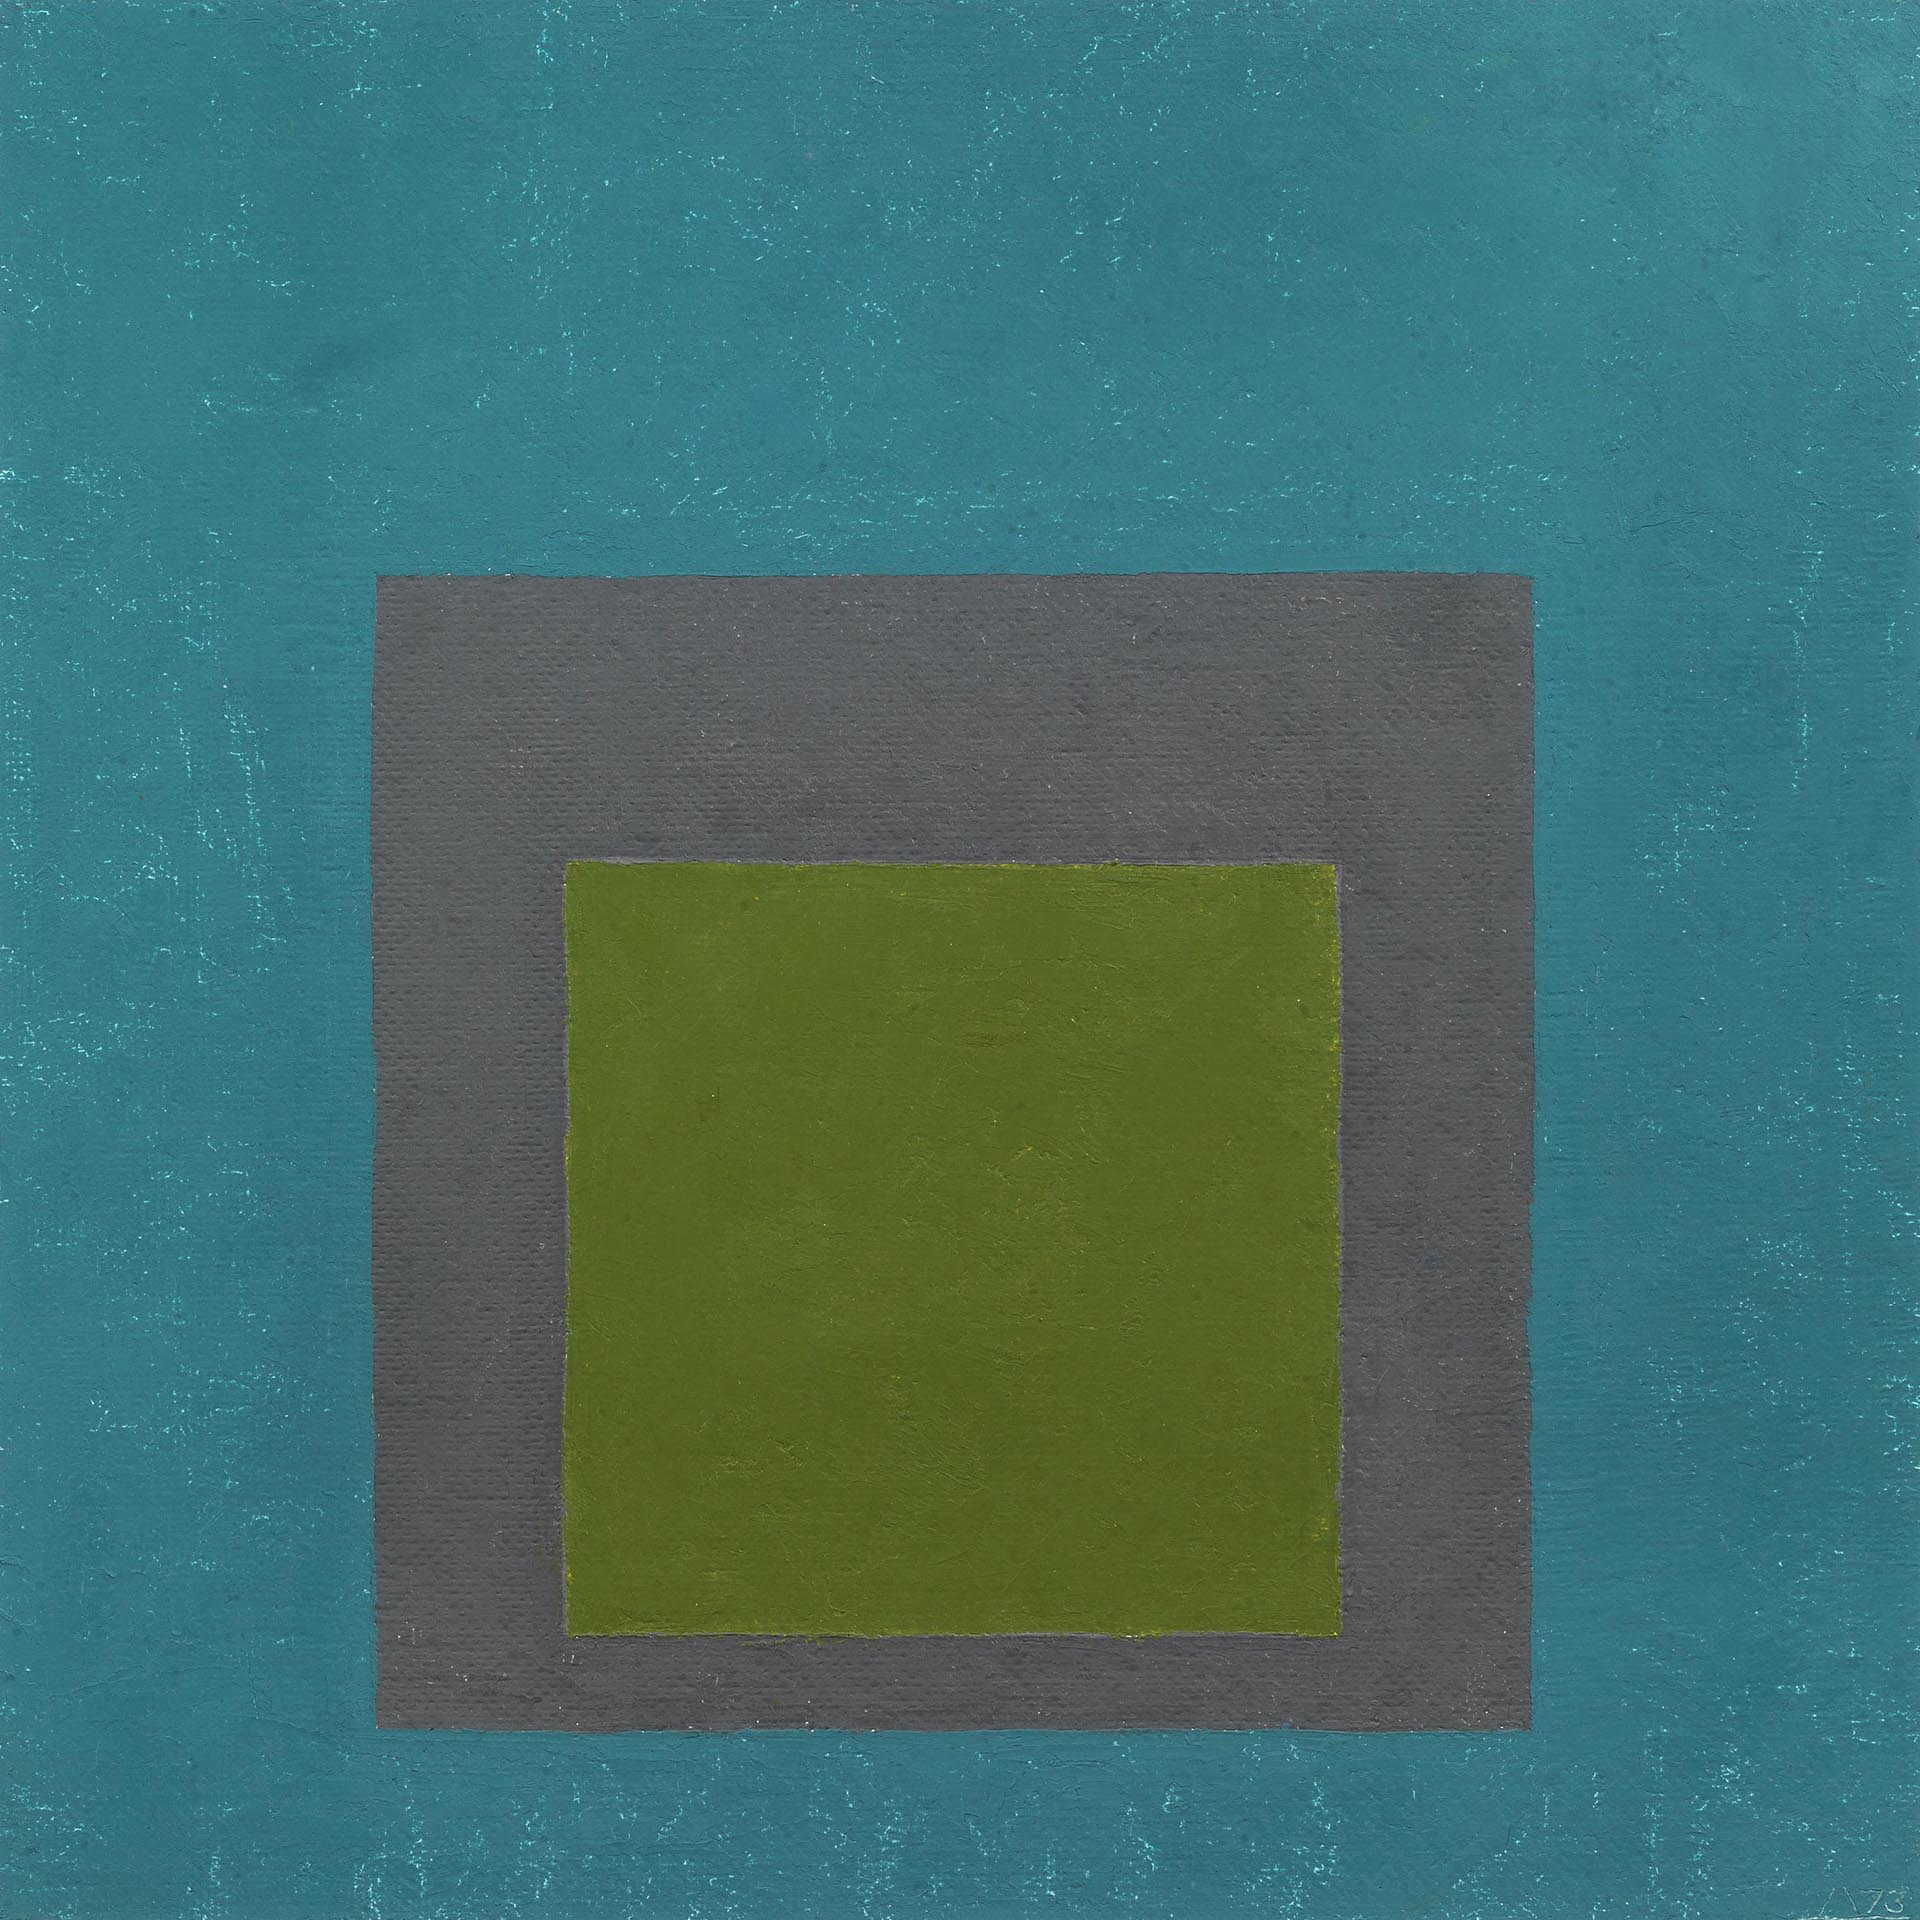 Albers_Study-for-Homage-to-the-Square_1973_40x40-cm